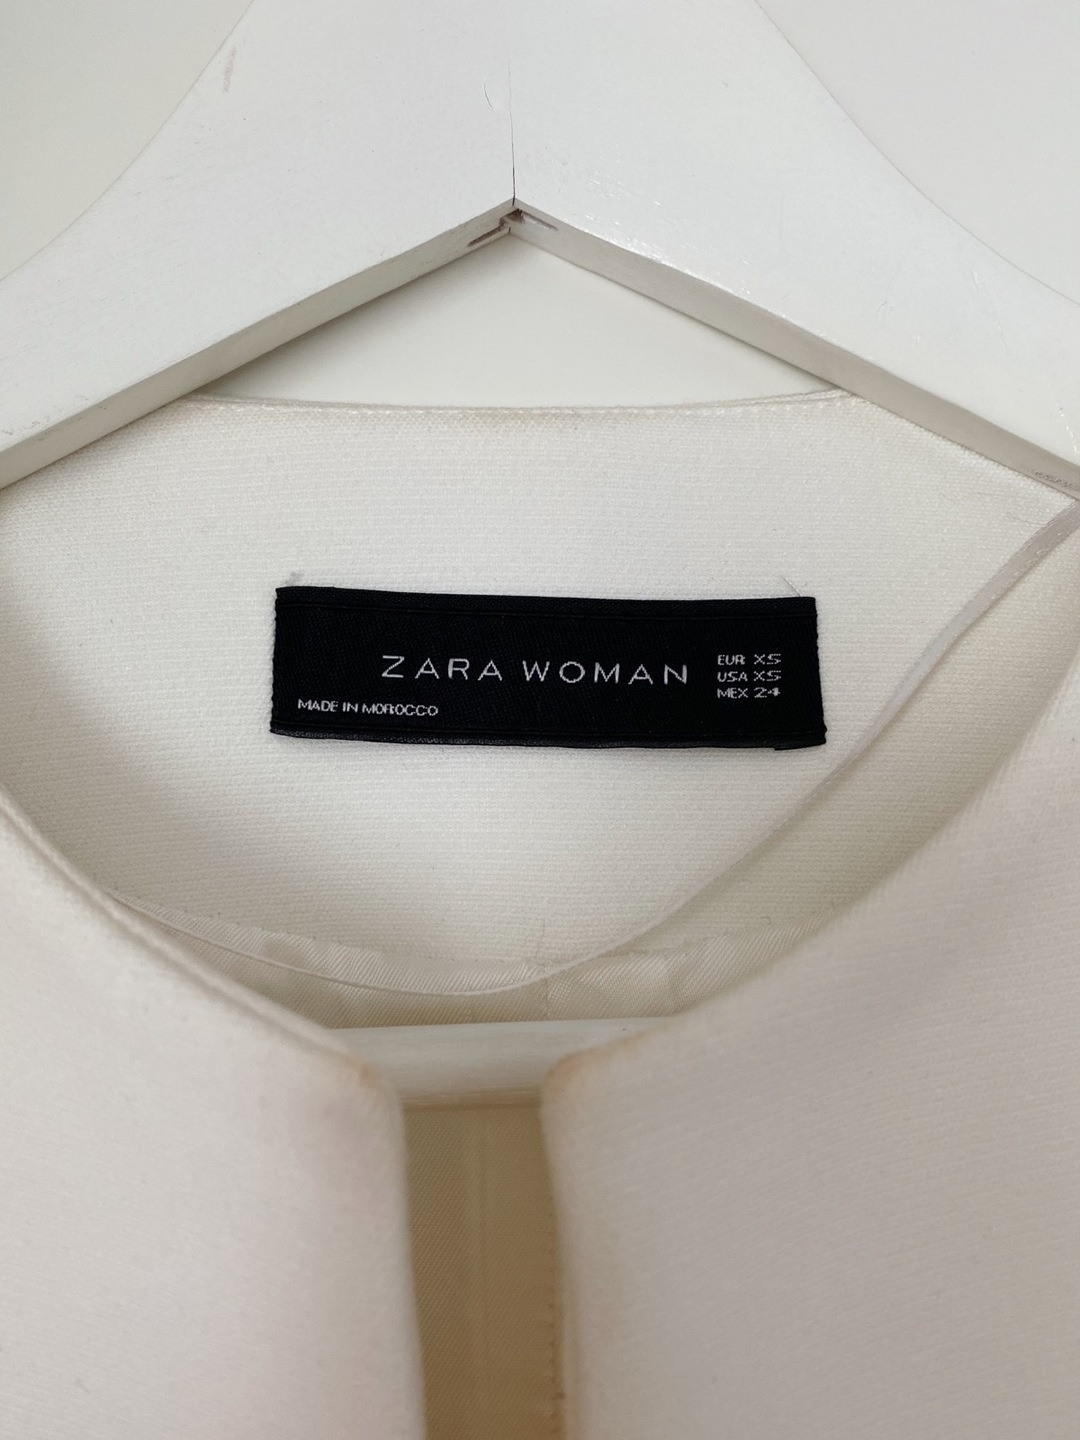 Women's coats & jackets - ZARA photo 3